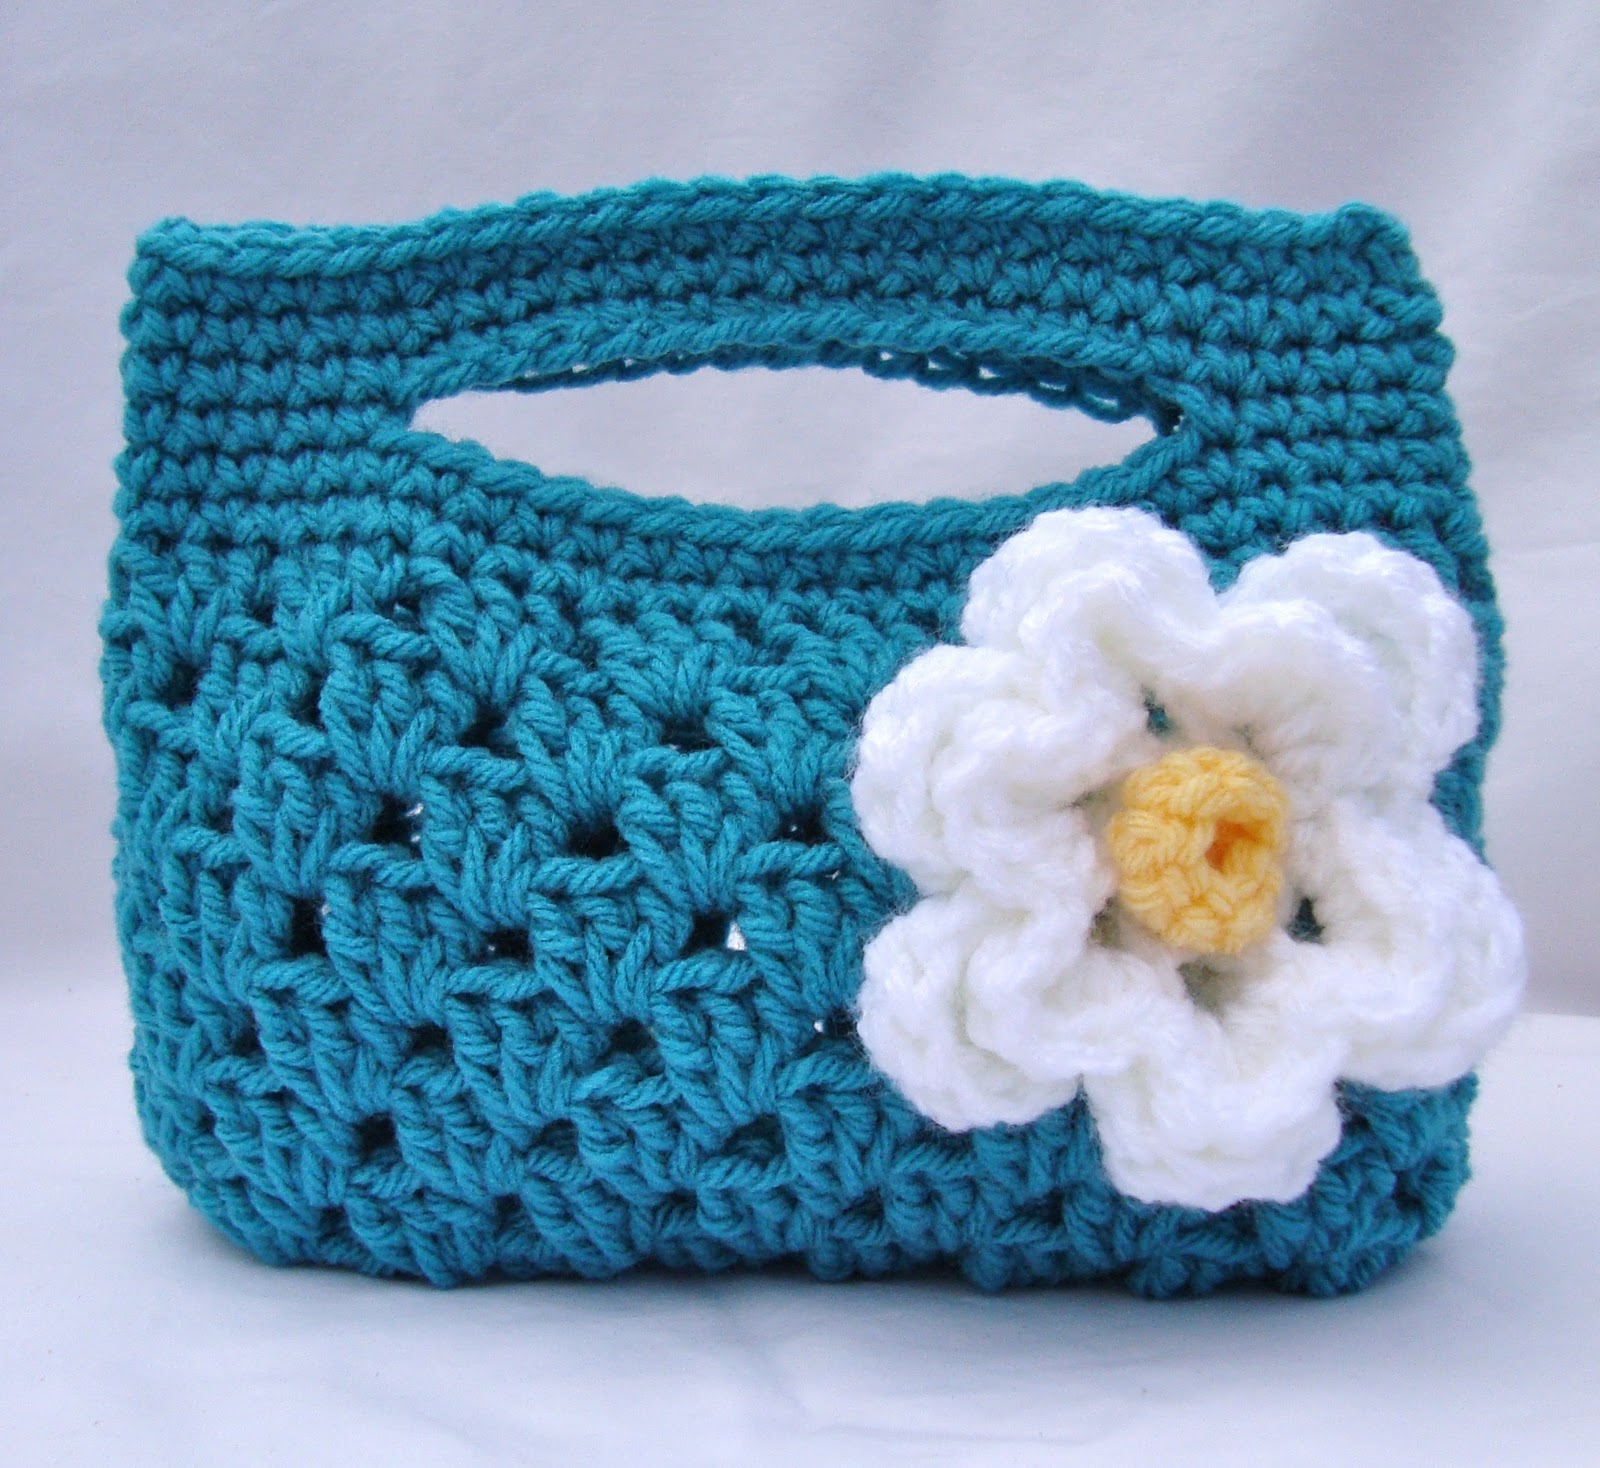 Crochet Patterns For Kids Bags : tangled happy: Granny Stripe Boutique Bag